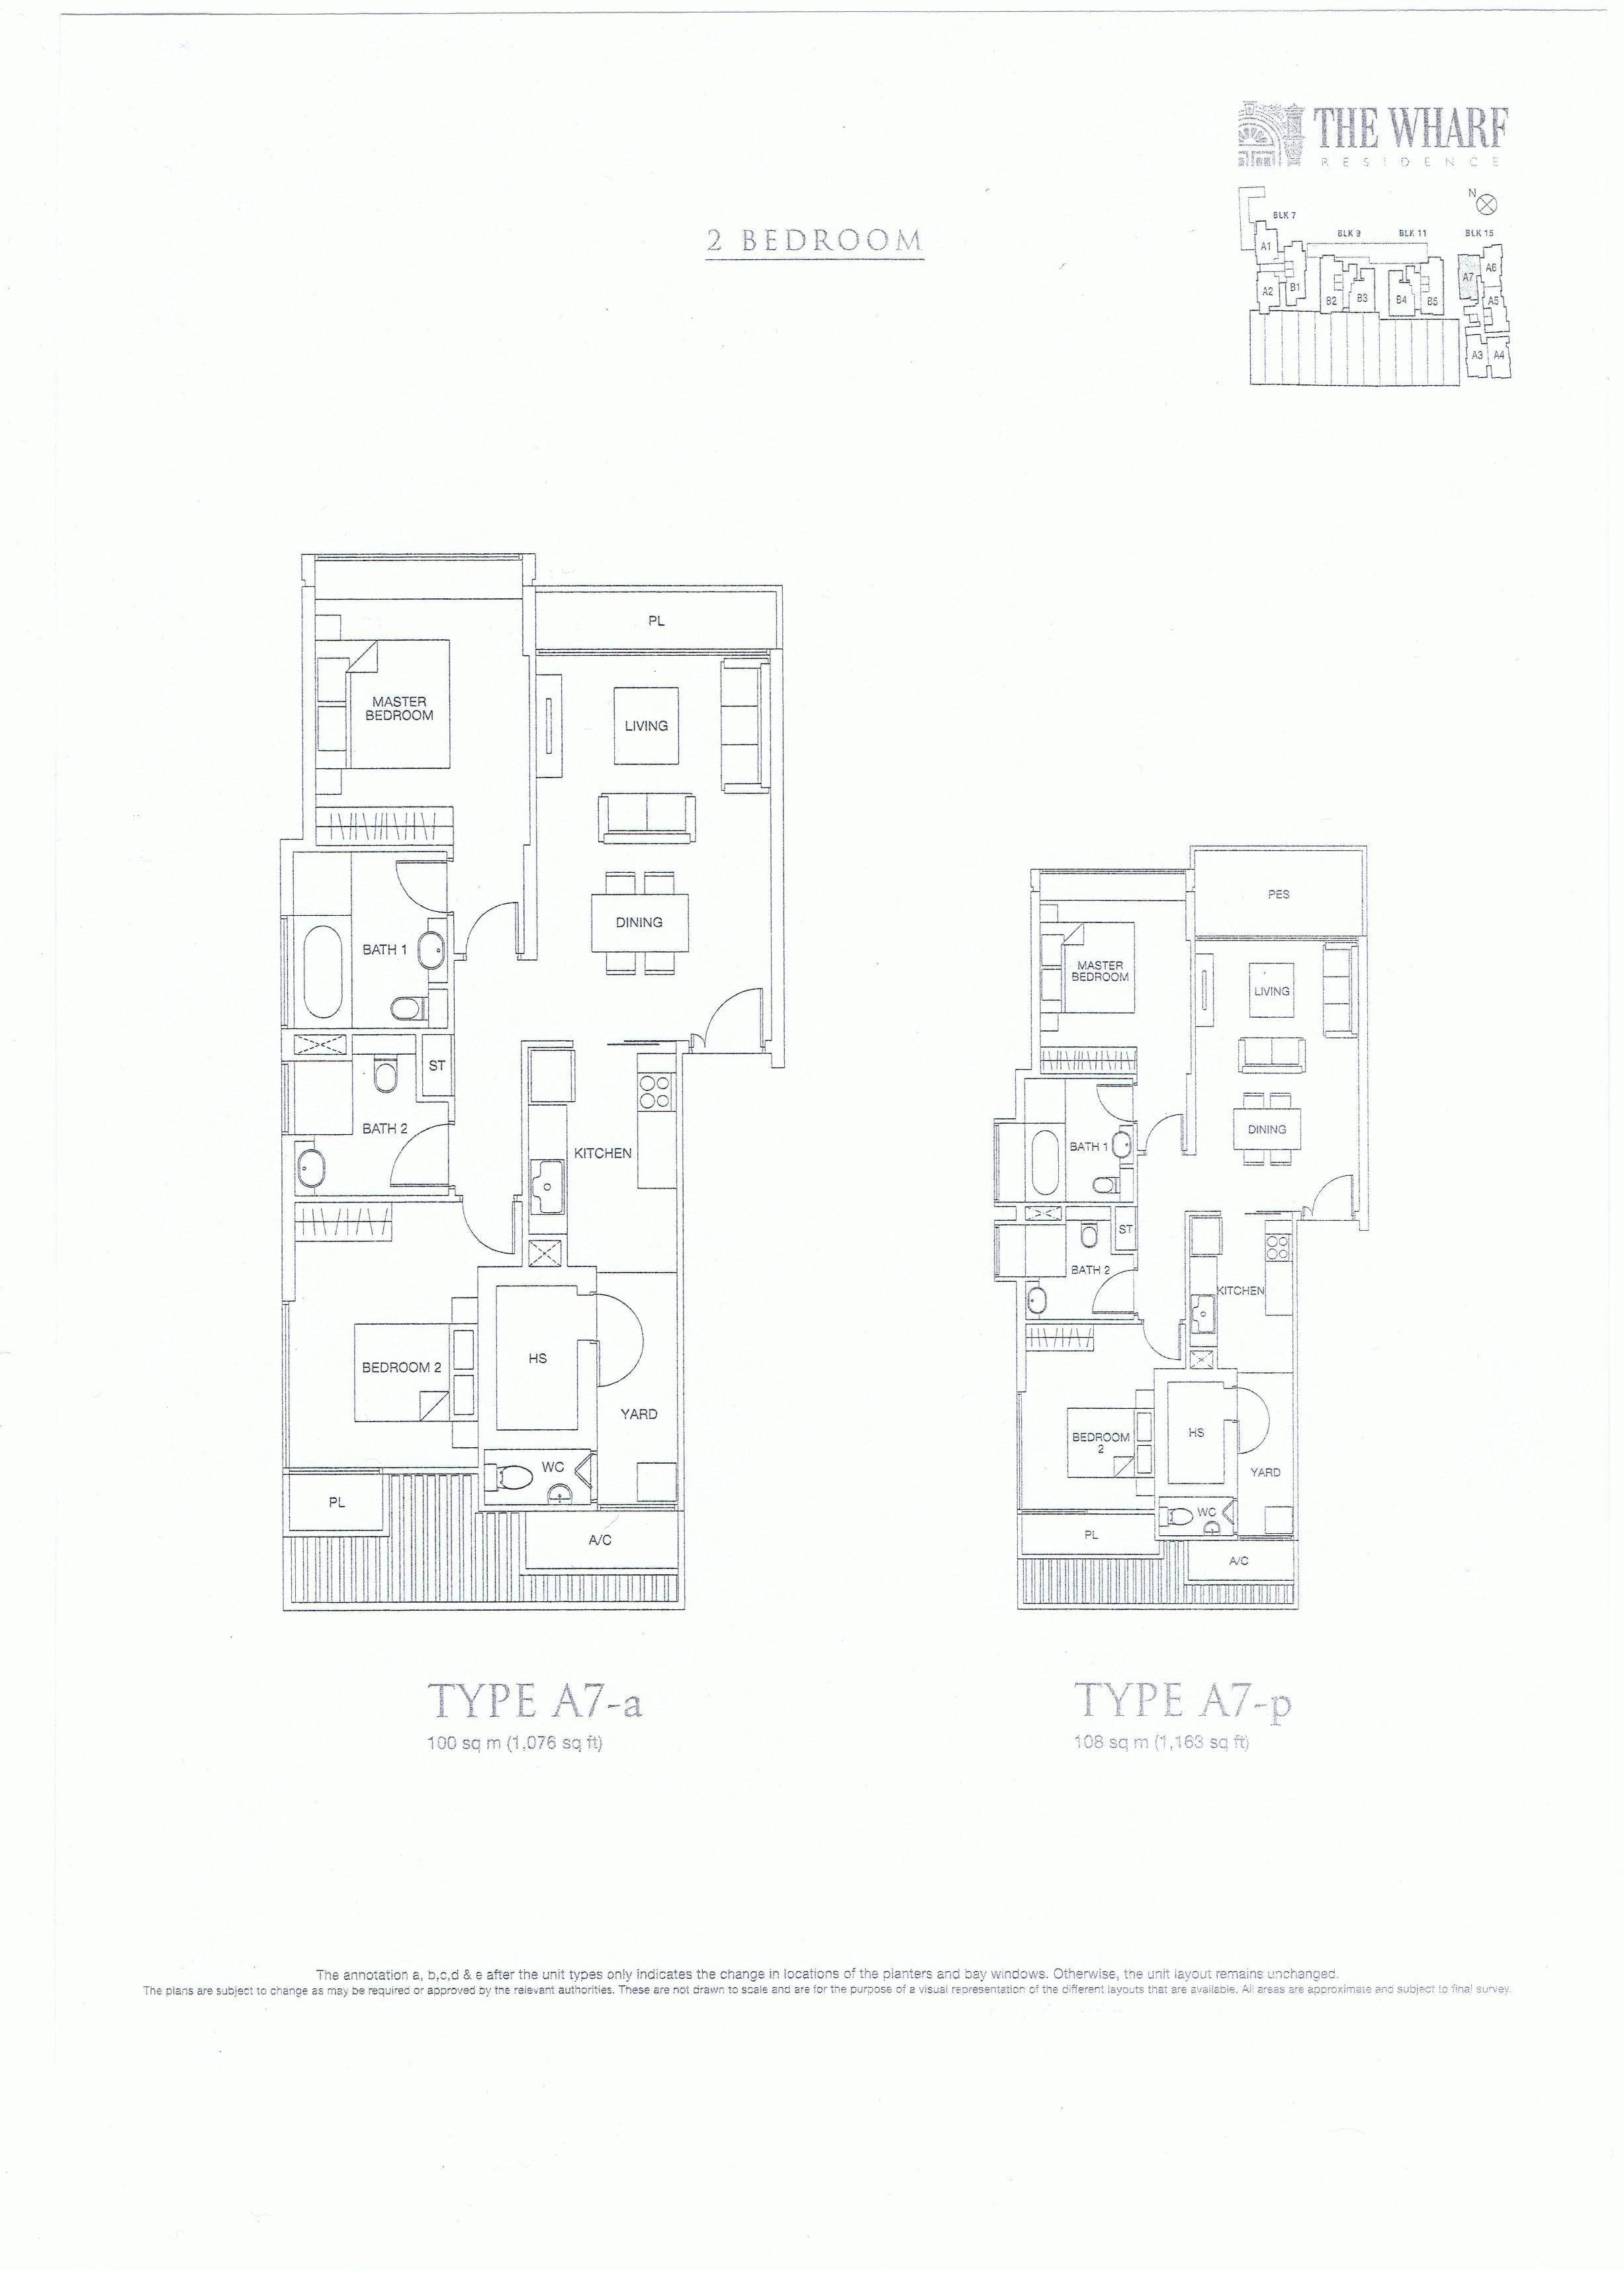 The Wharf Residence 2 Bedroom Floor Plans Type A7-a, A7-p